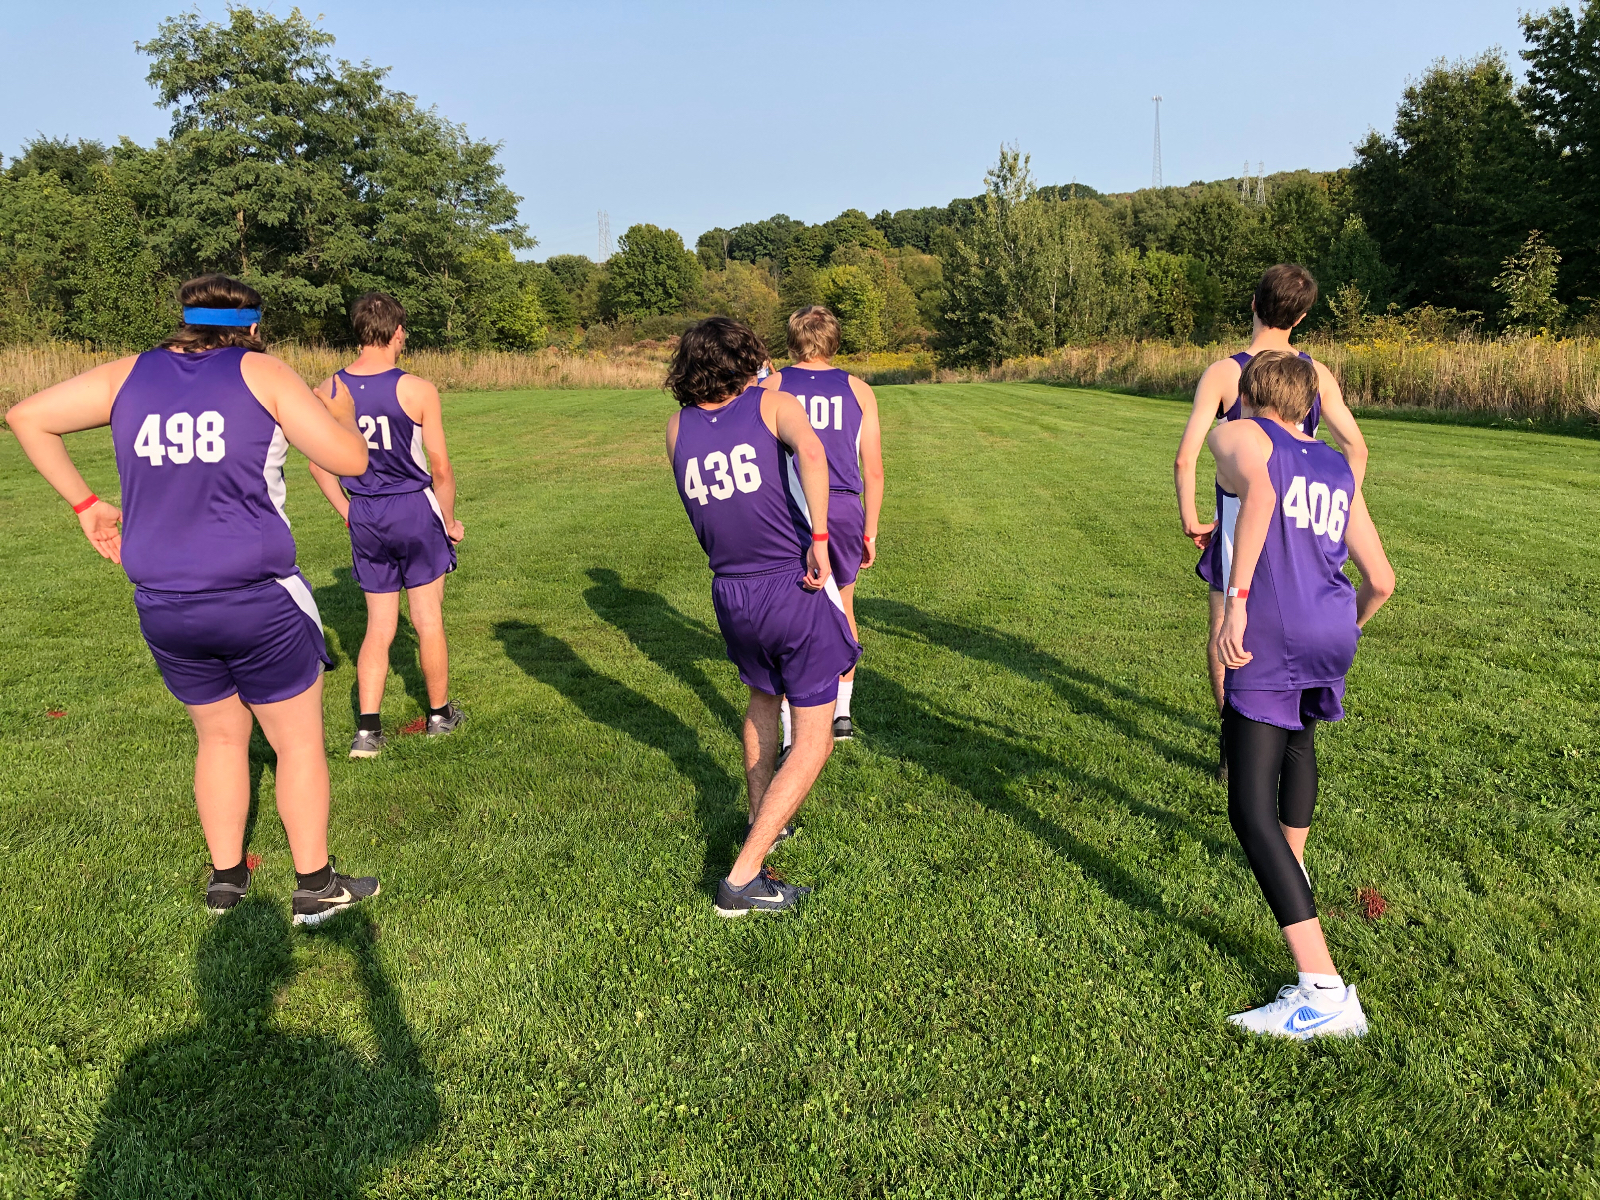 Sebring XC teams competes in Columbiana